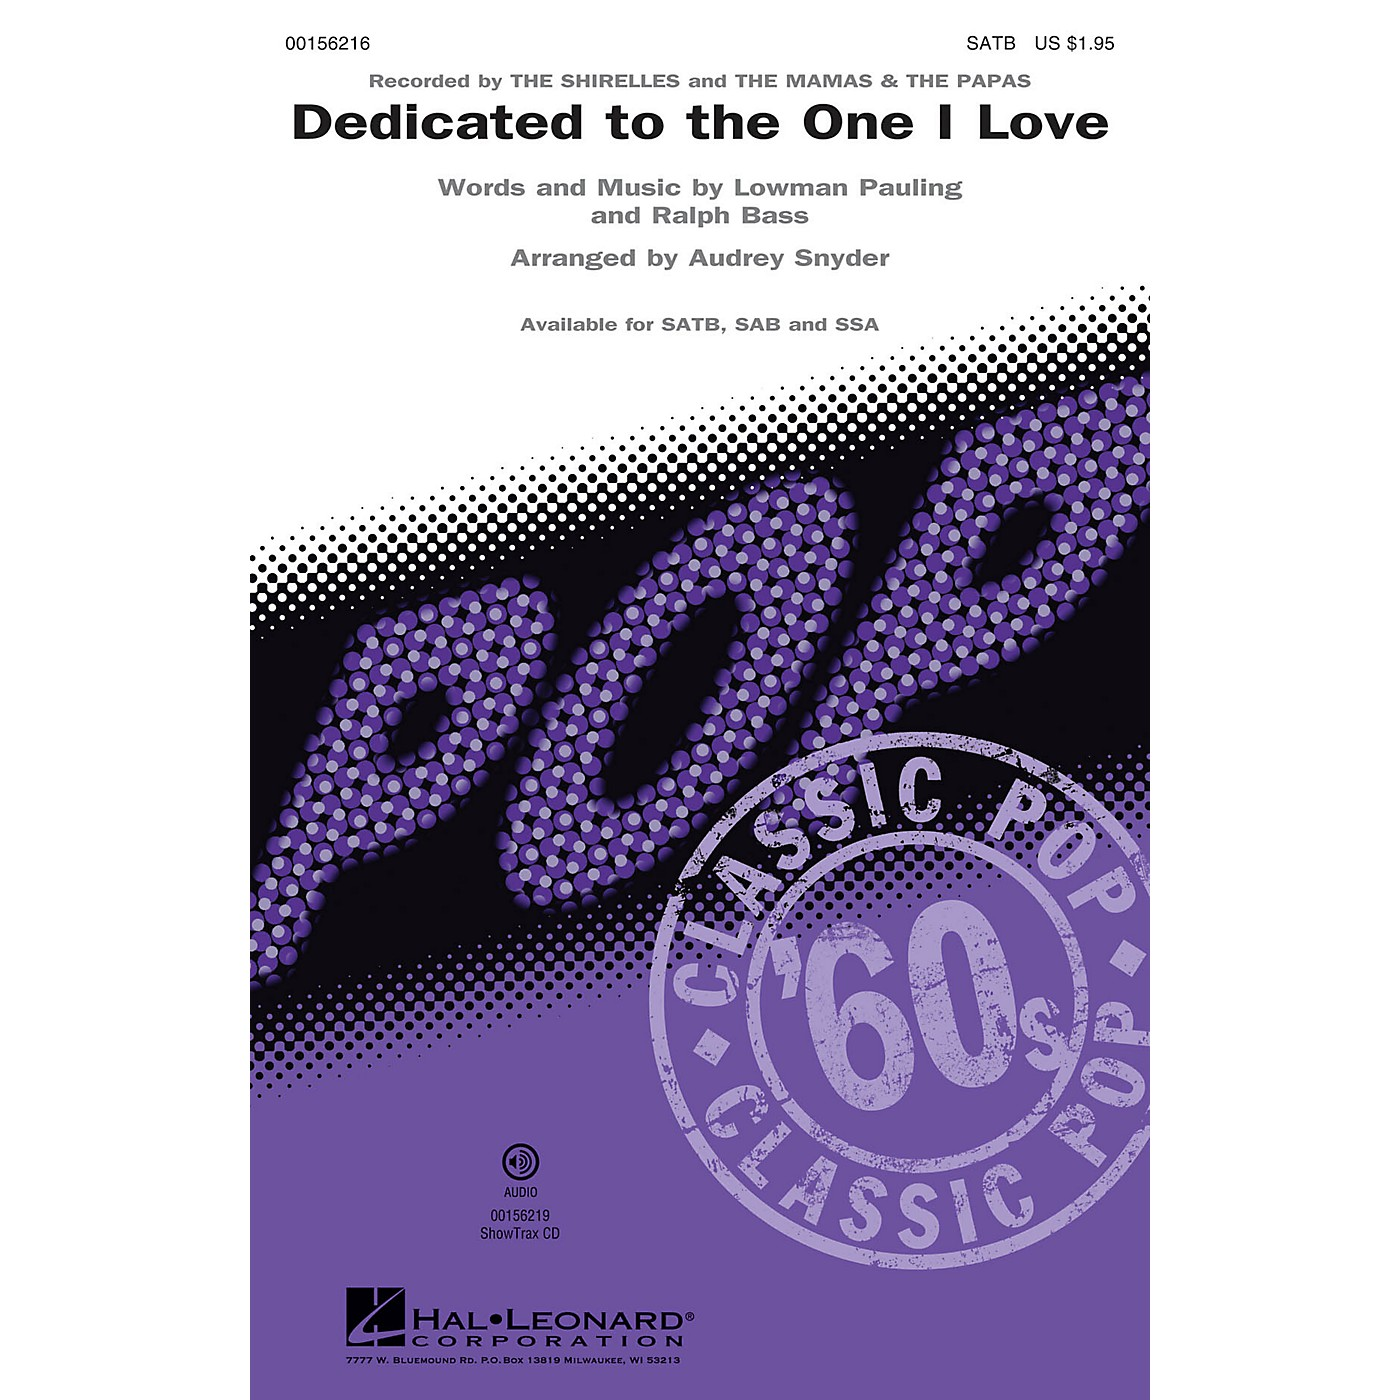 Hal Leonard Dedicated to the One I Love SSA by The Mamas & the Papas and The Shirelles Arranged by Audrey Snyder thumbnail